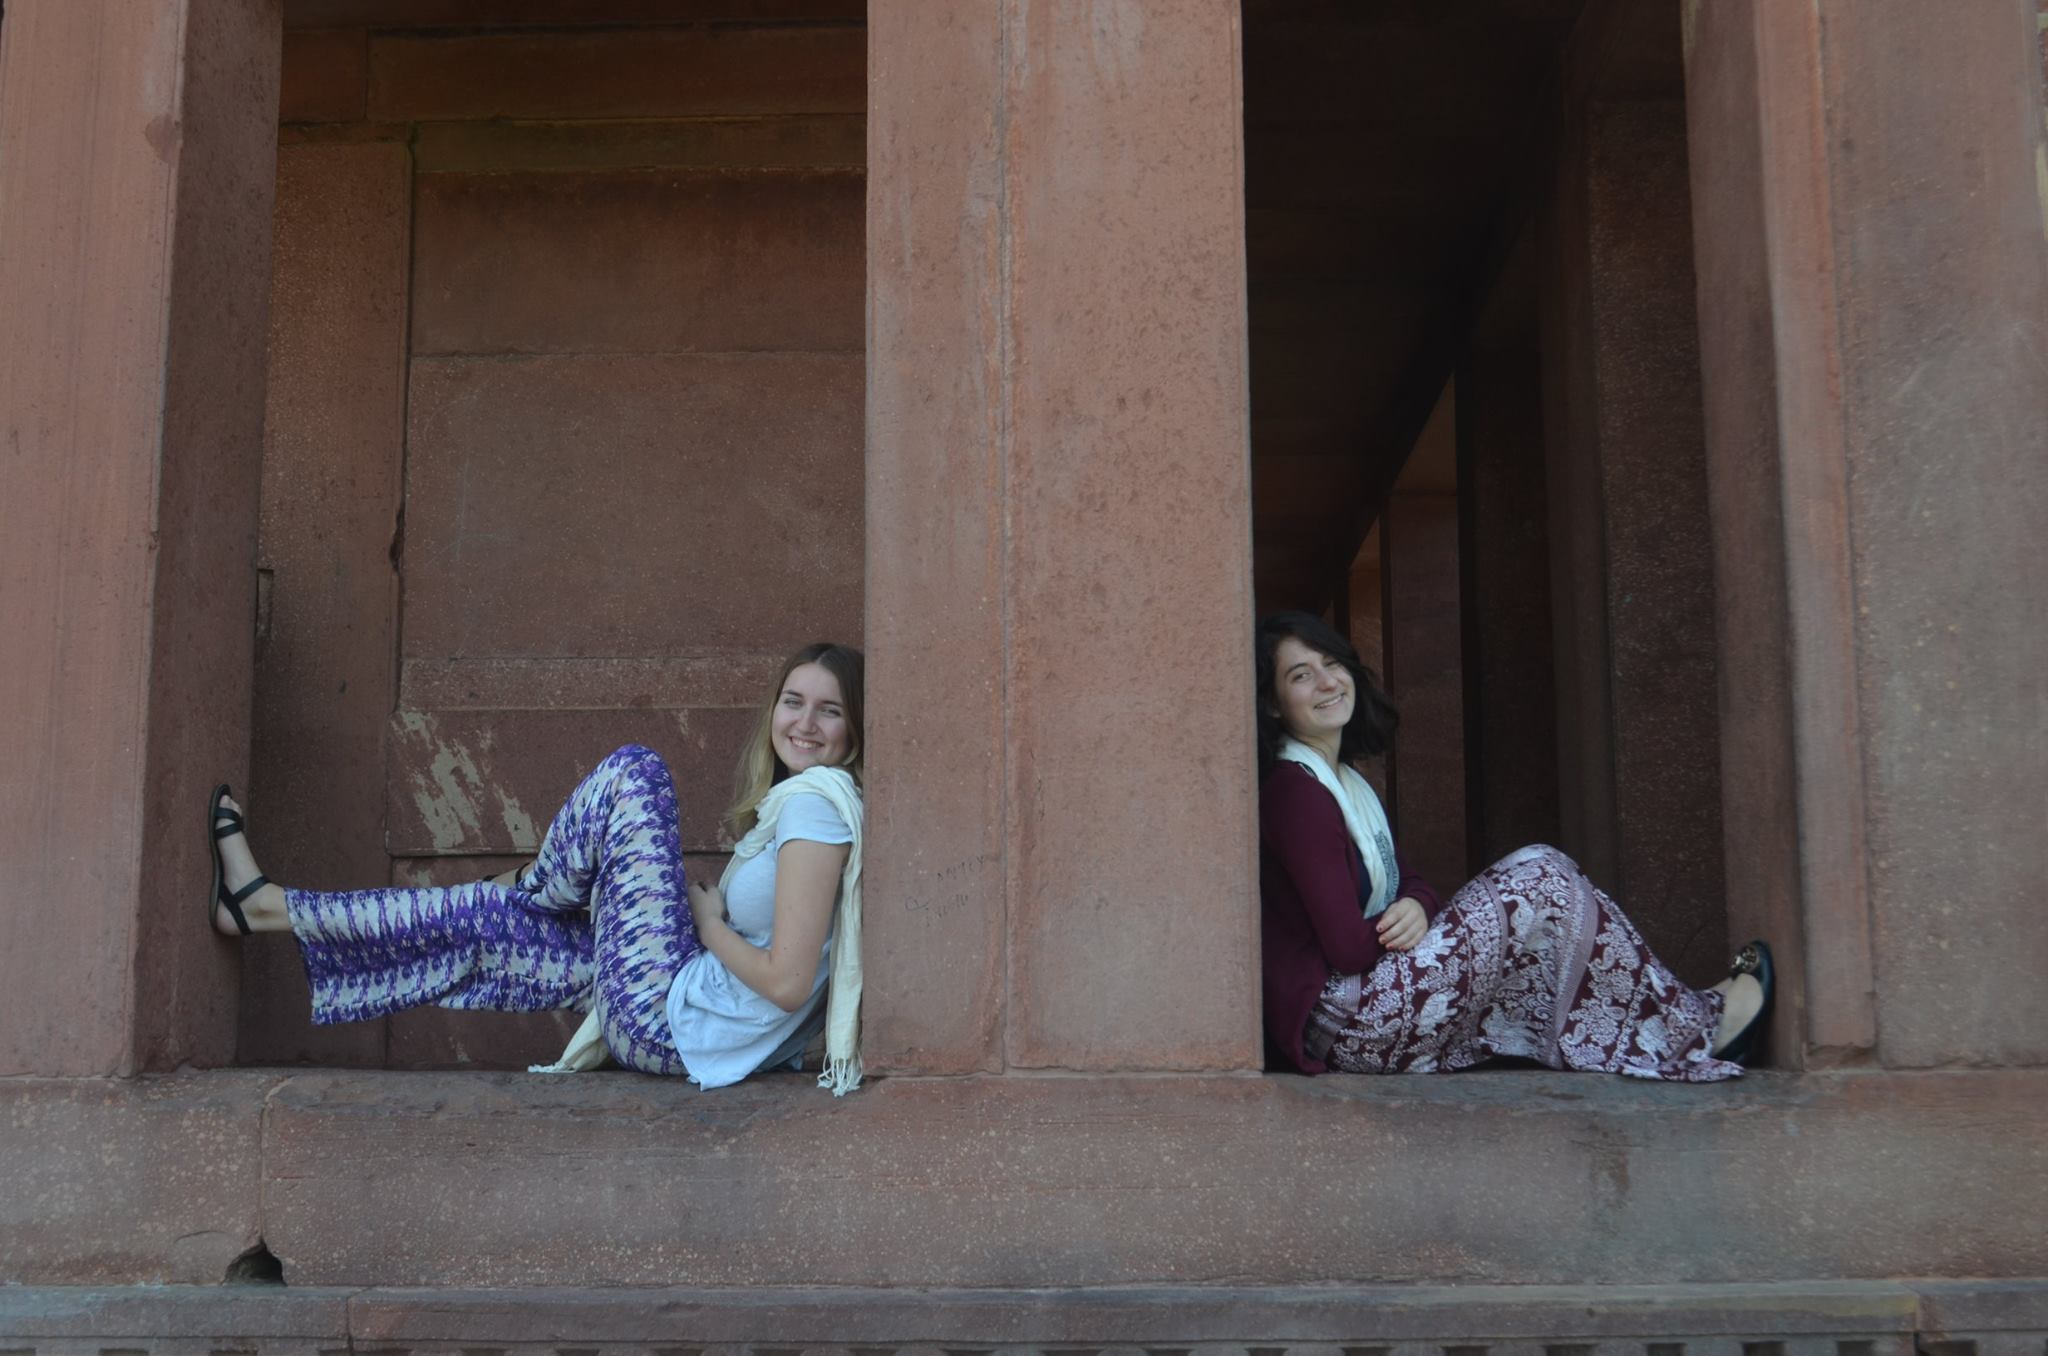 Jessica Thevenoz ('17) and Rebecca Jacobs ('17) at the City Palace in Jaipur, India